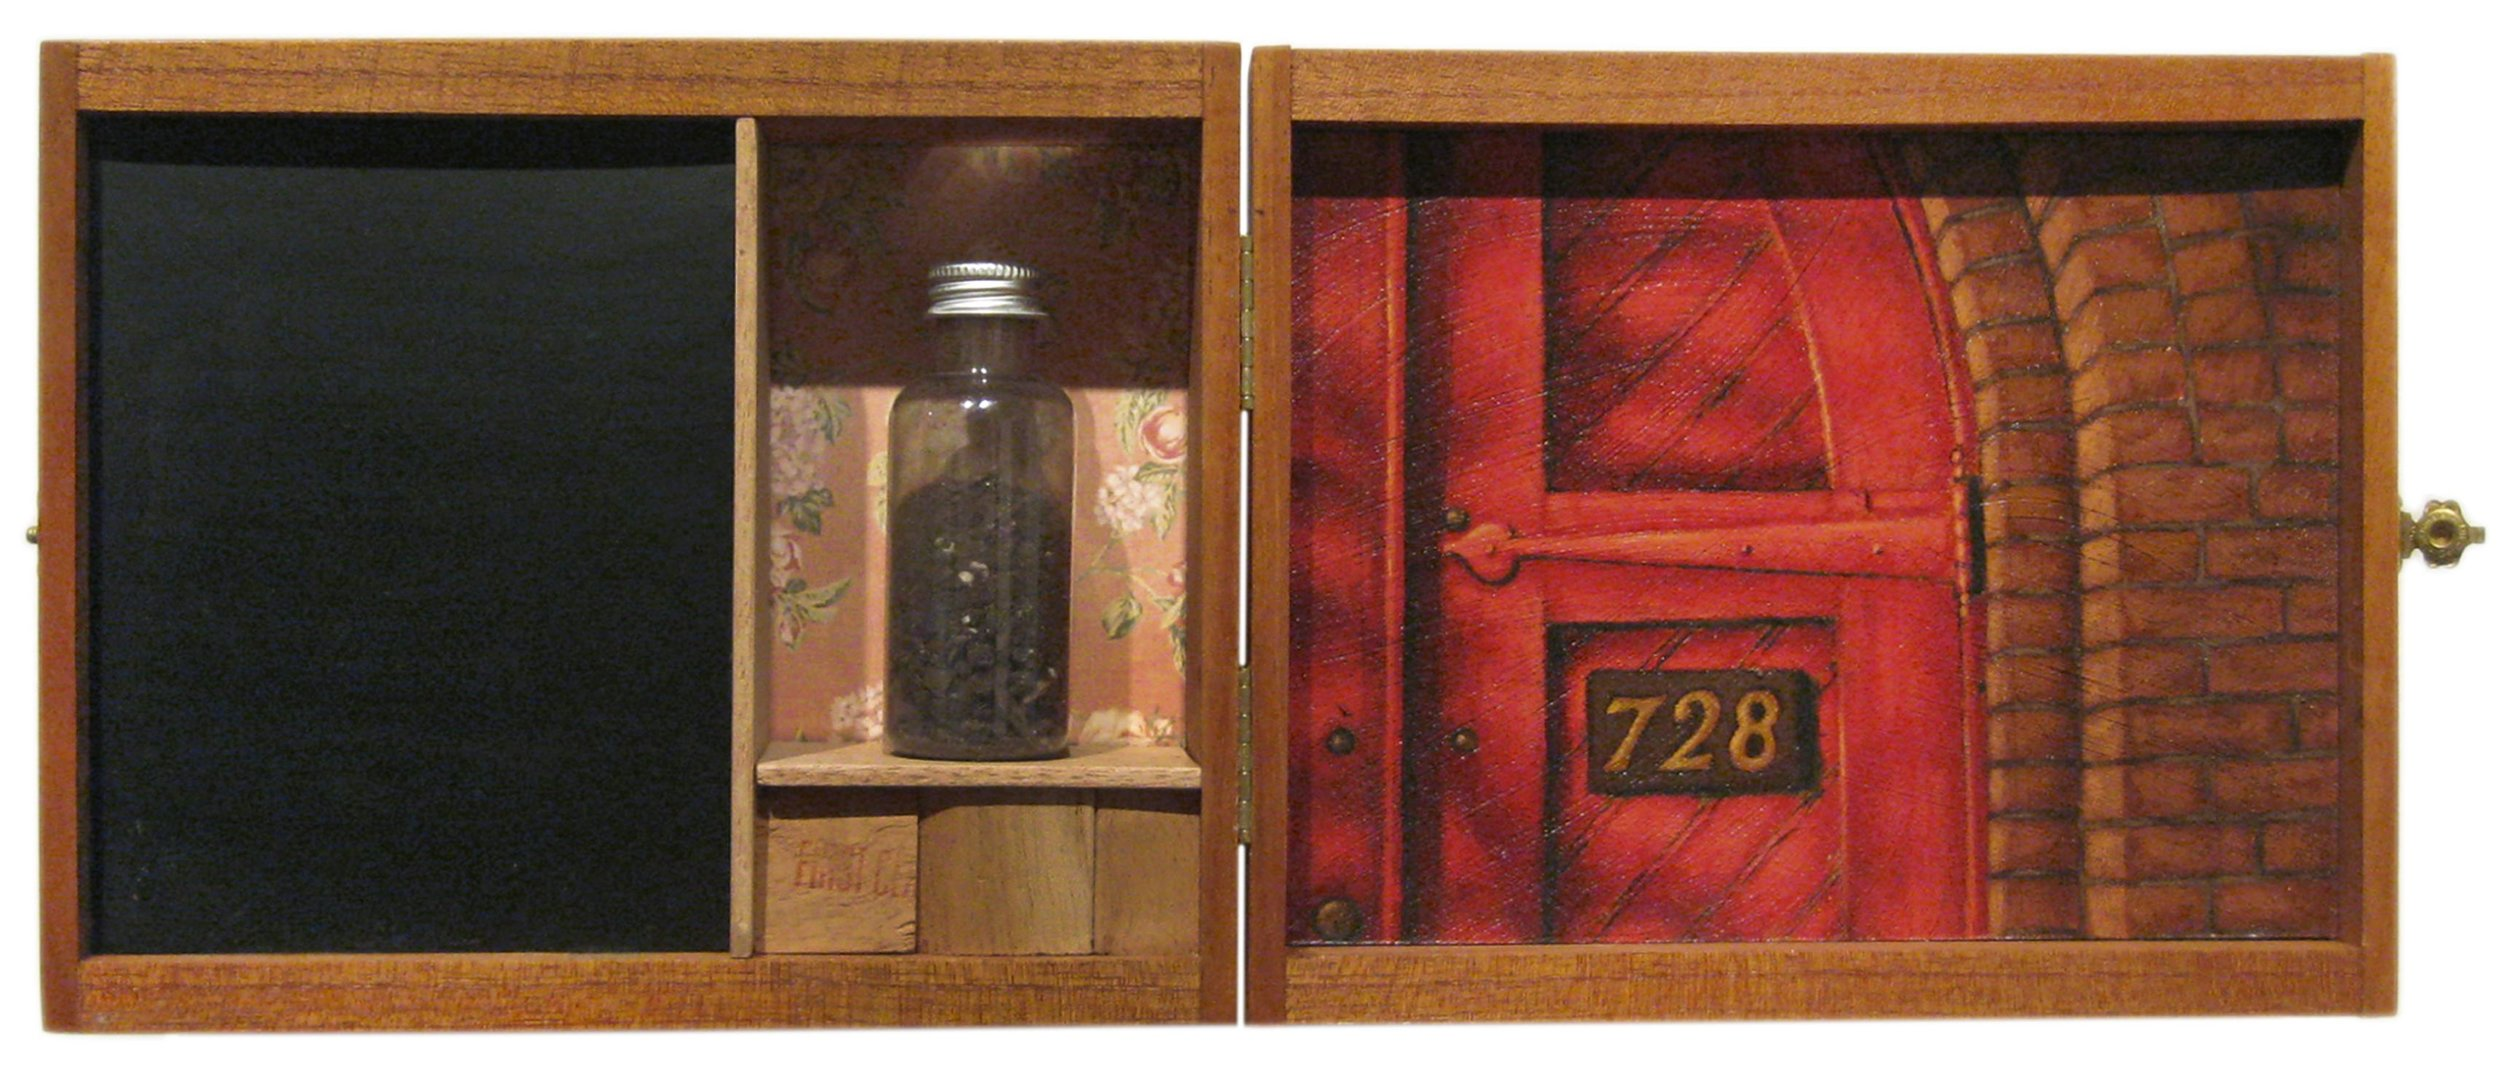 Learning Potential   Mixed Media Cigar Box Installation 16.25in x 6.75in x 3in deep